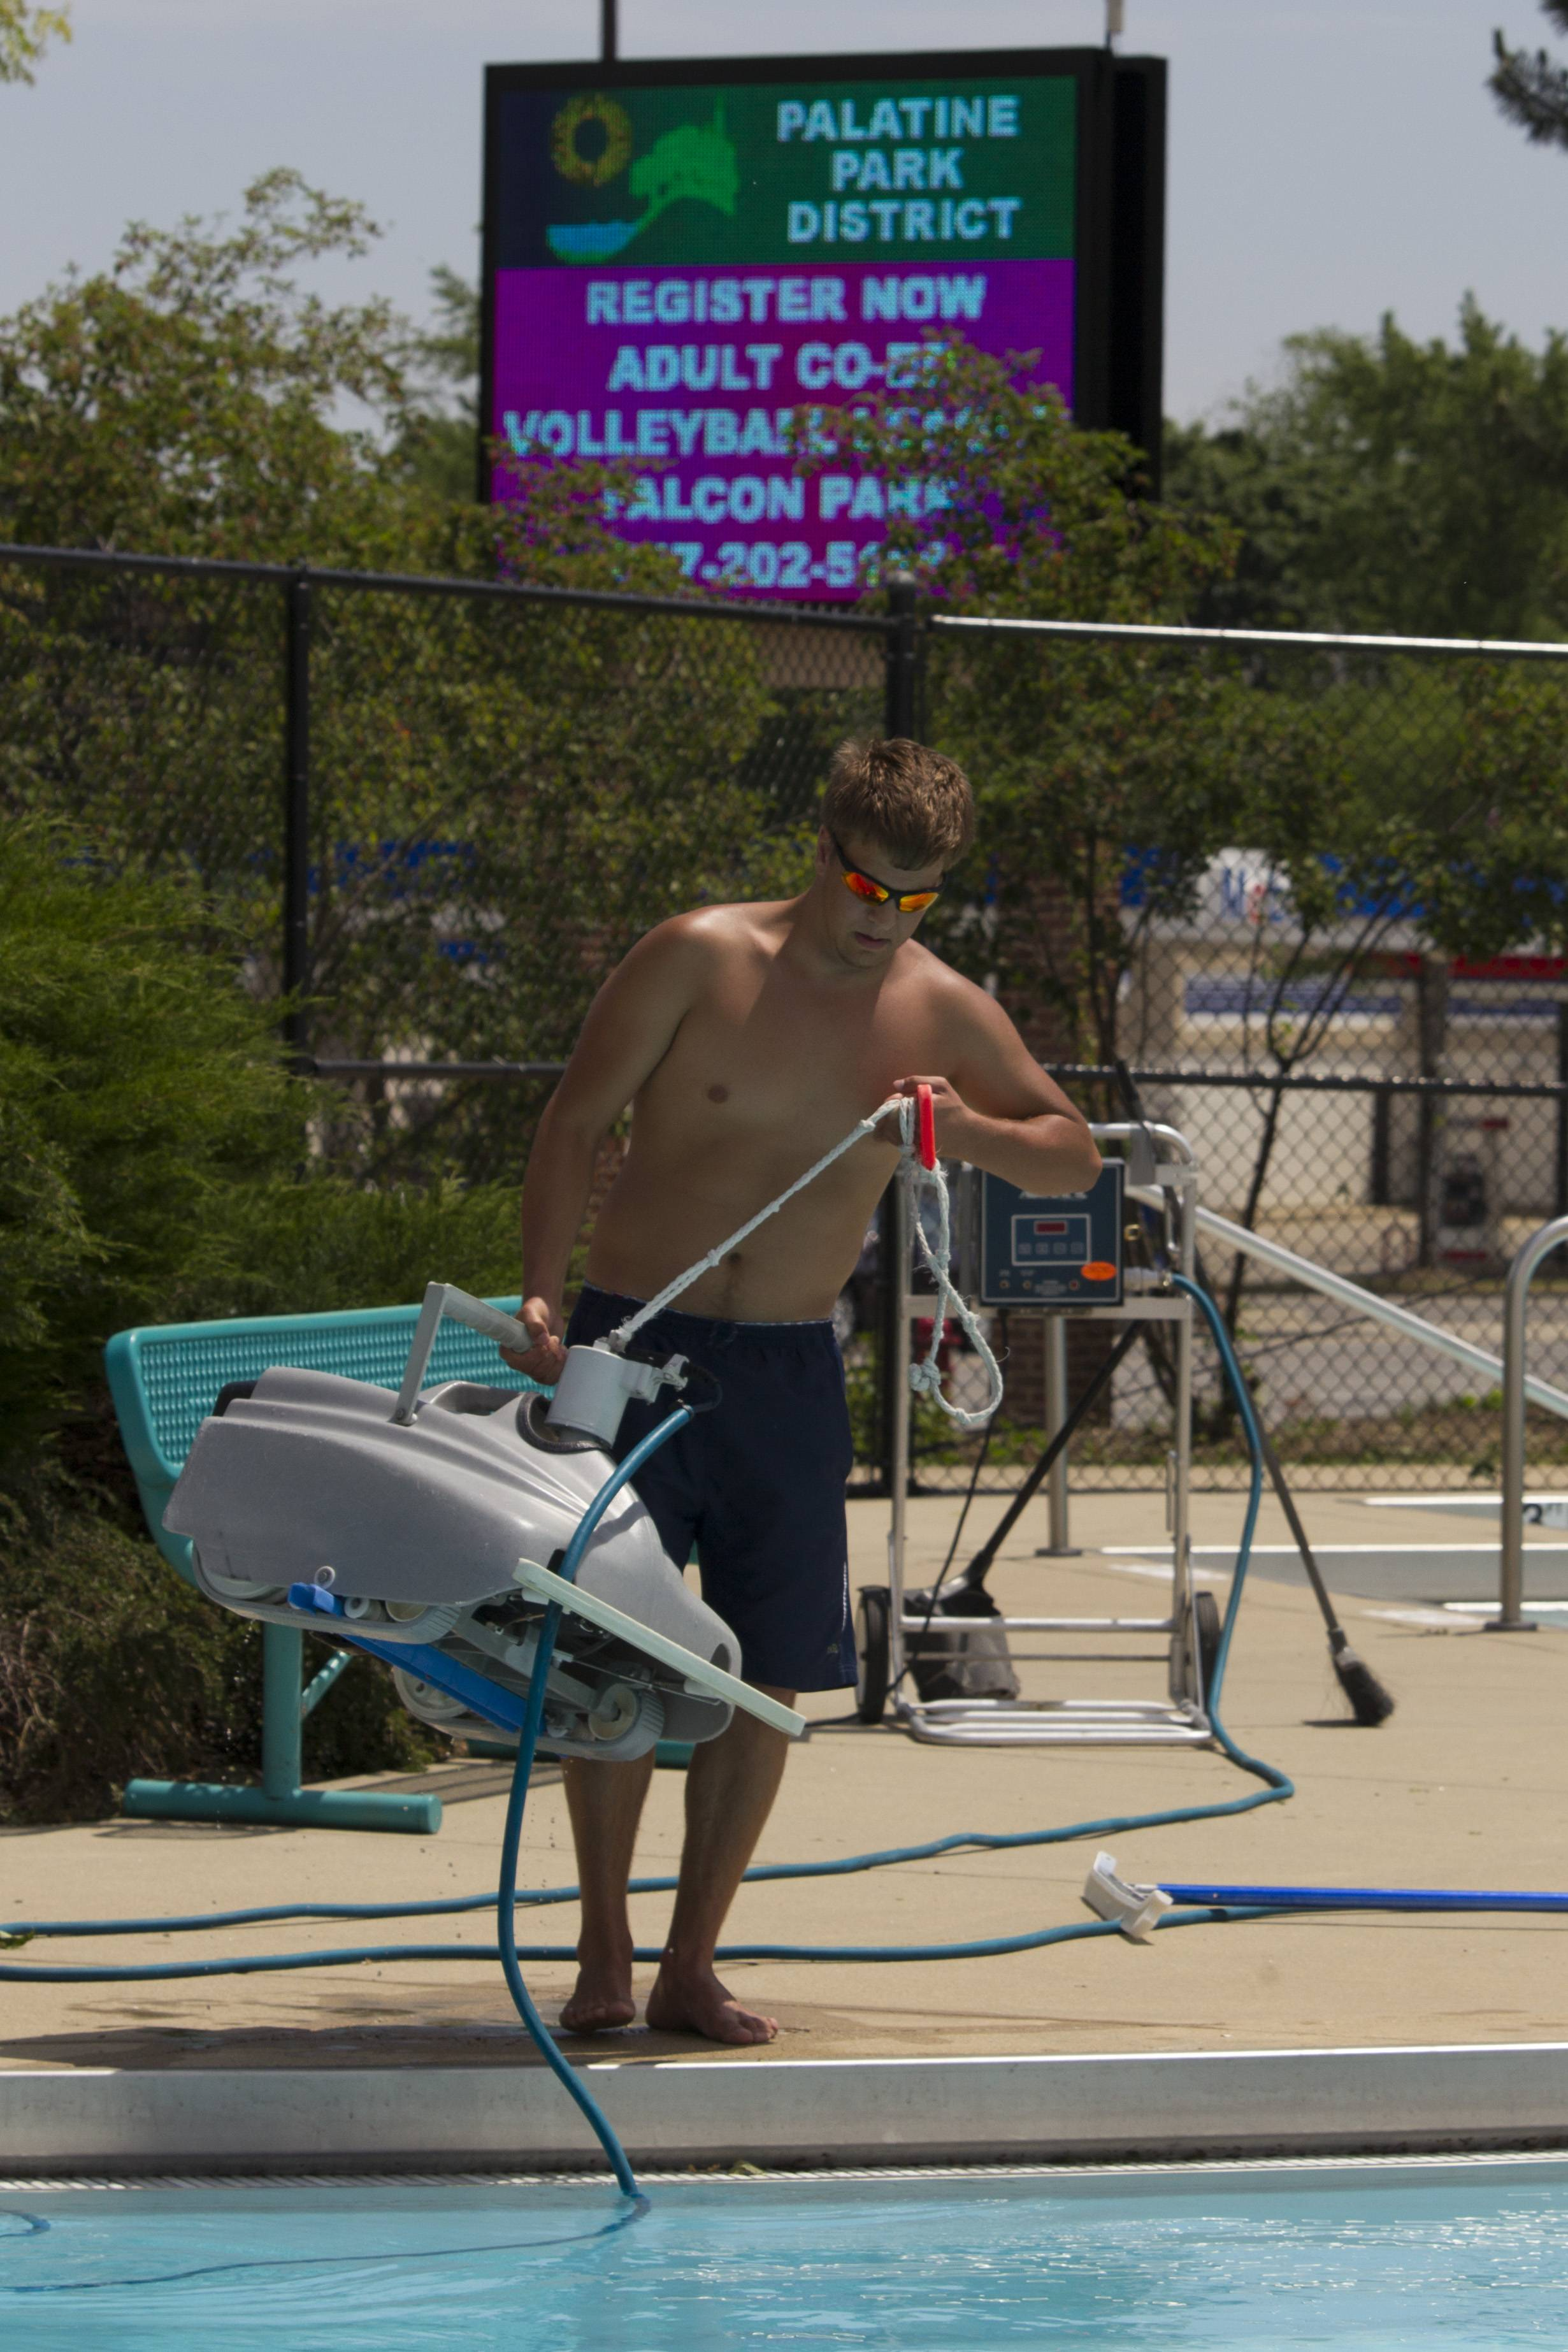 Northwest suburban water parks opening Memorial Day weekend